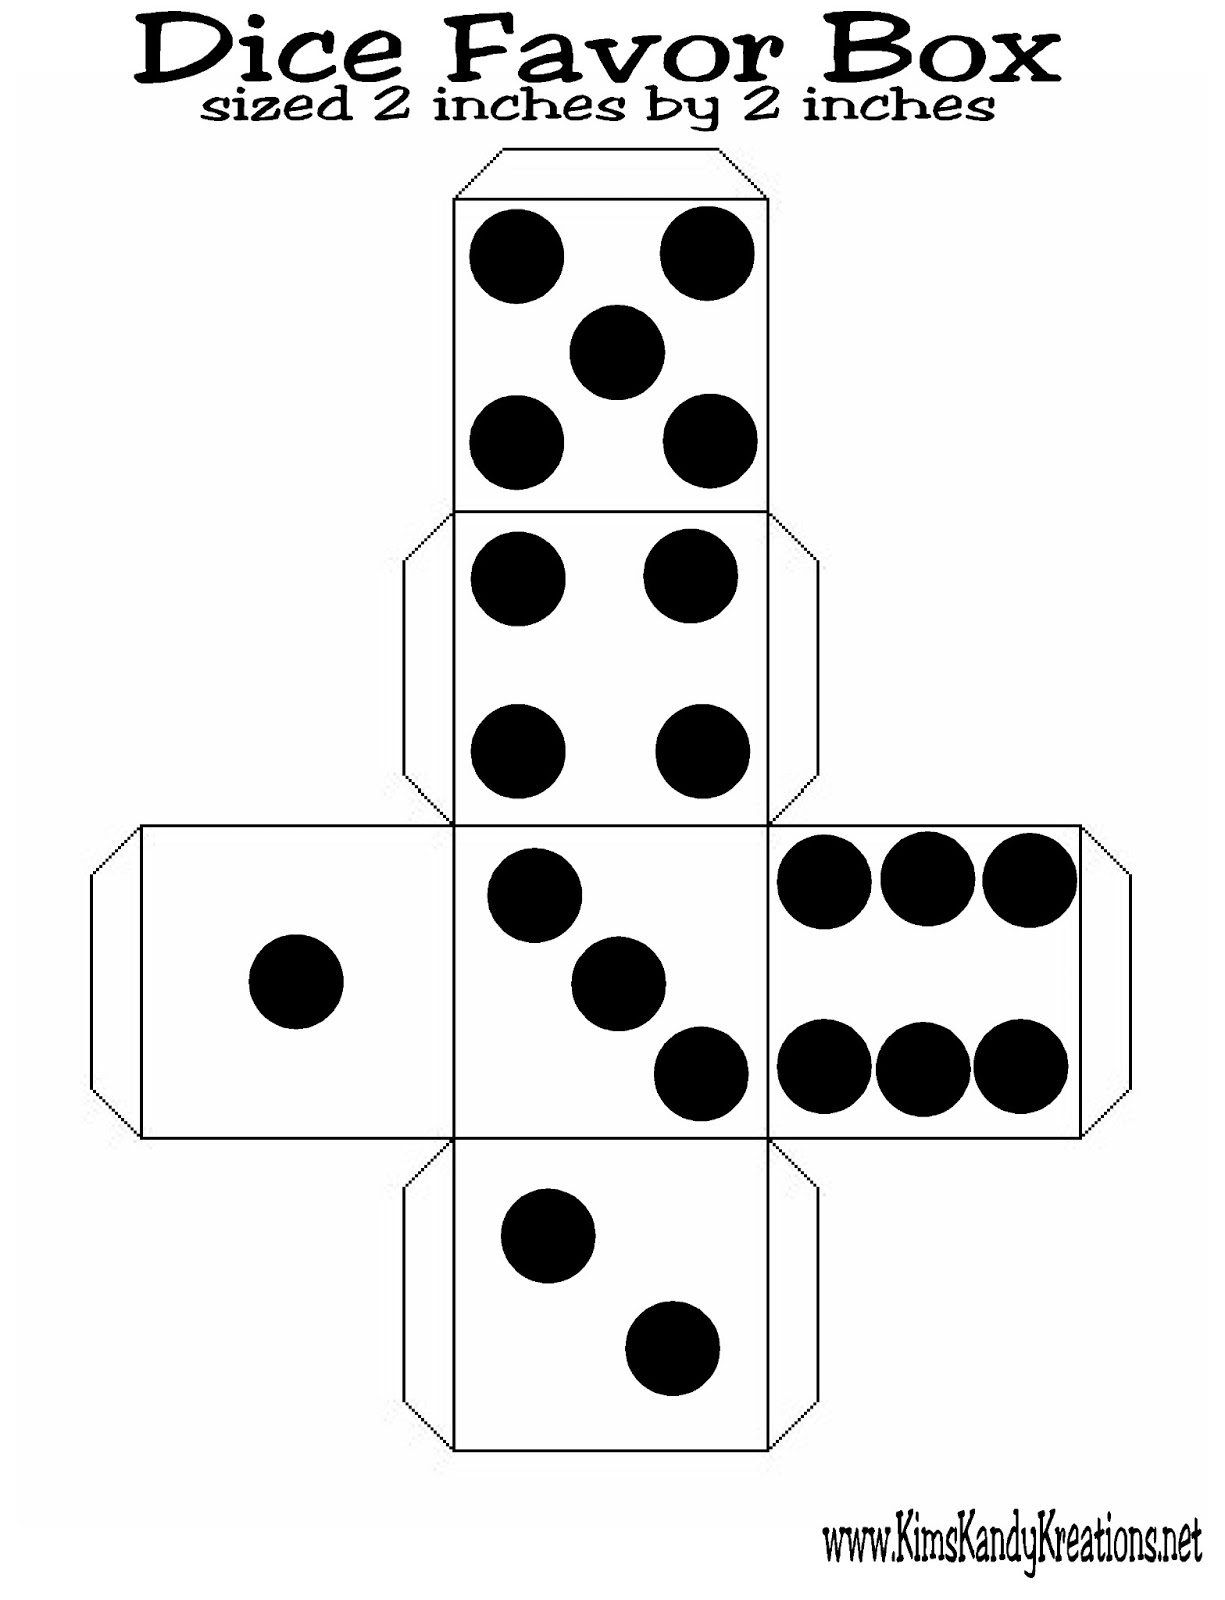 Simplicity image within dice printable